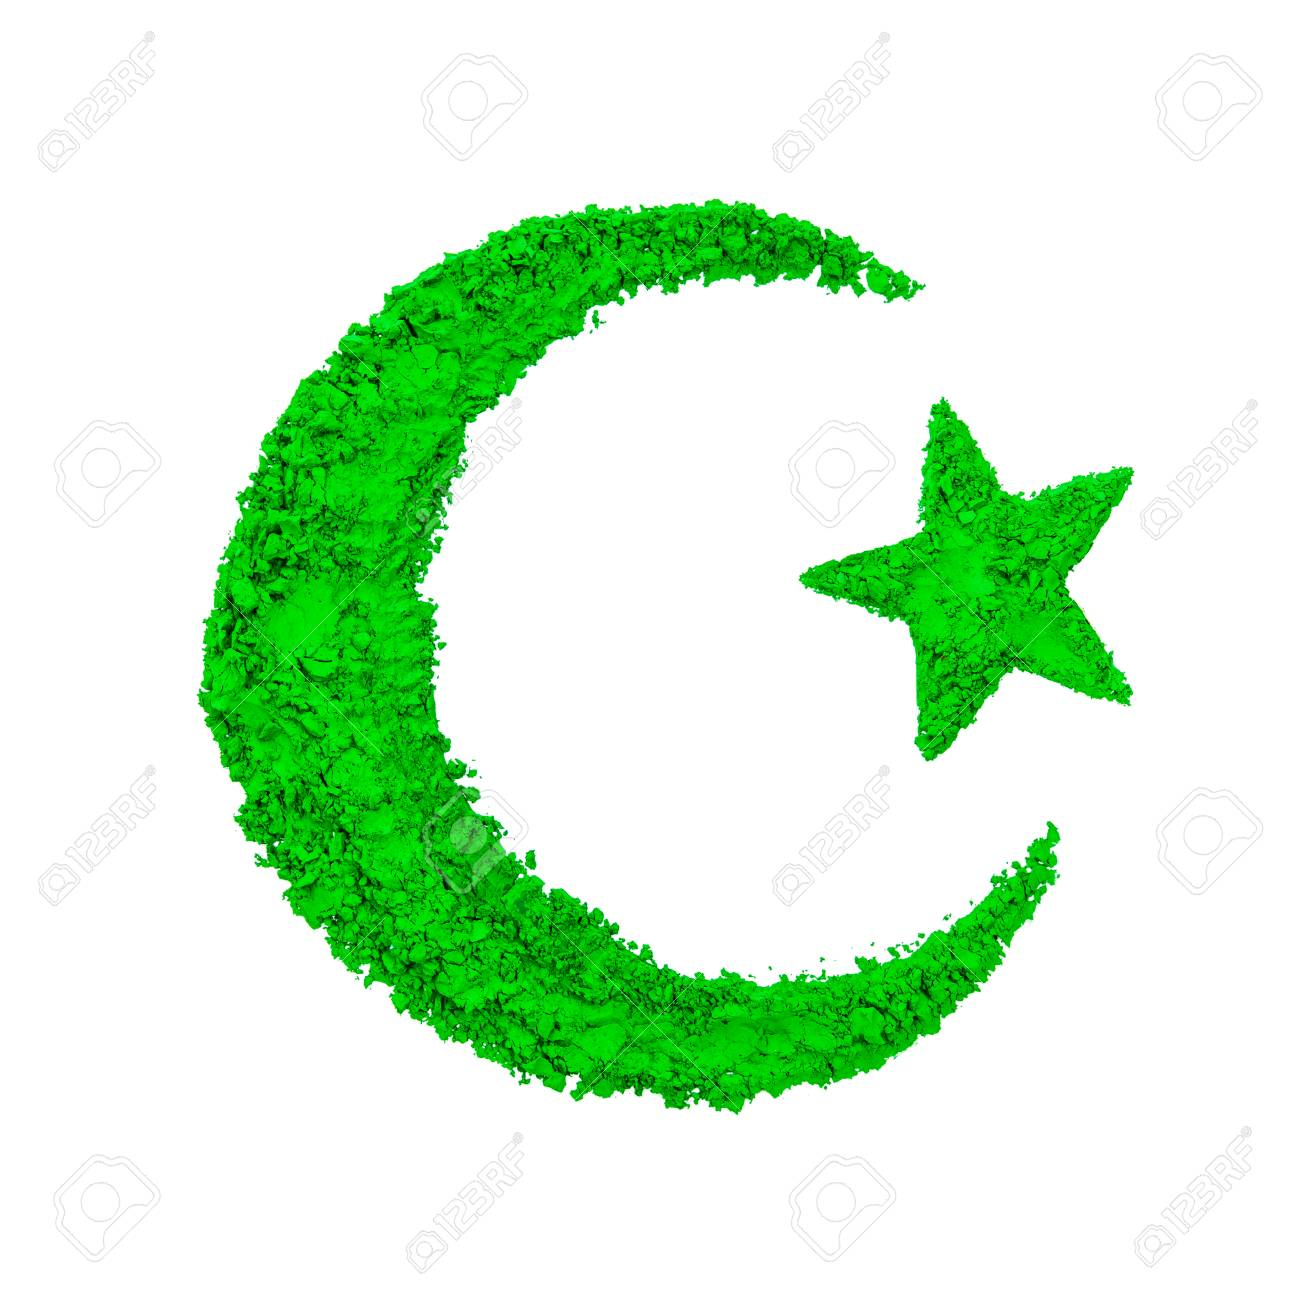 Crescent moon and star of islam made with green color powder crescent moon and star of islam made with green color powder isolated on a white biocorpaavc Gallery